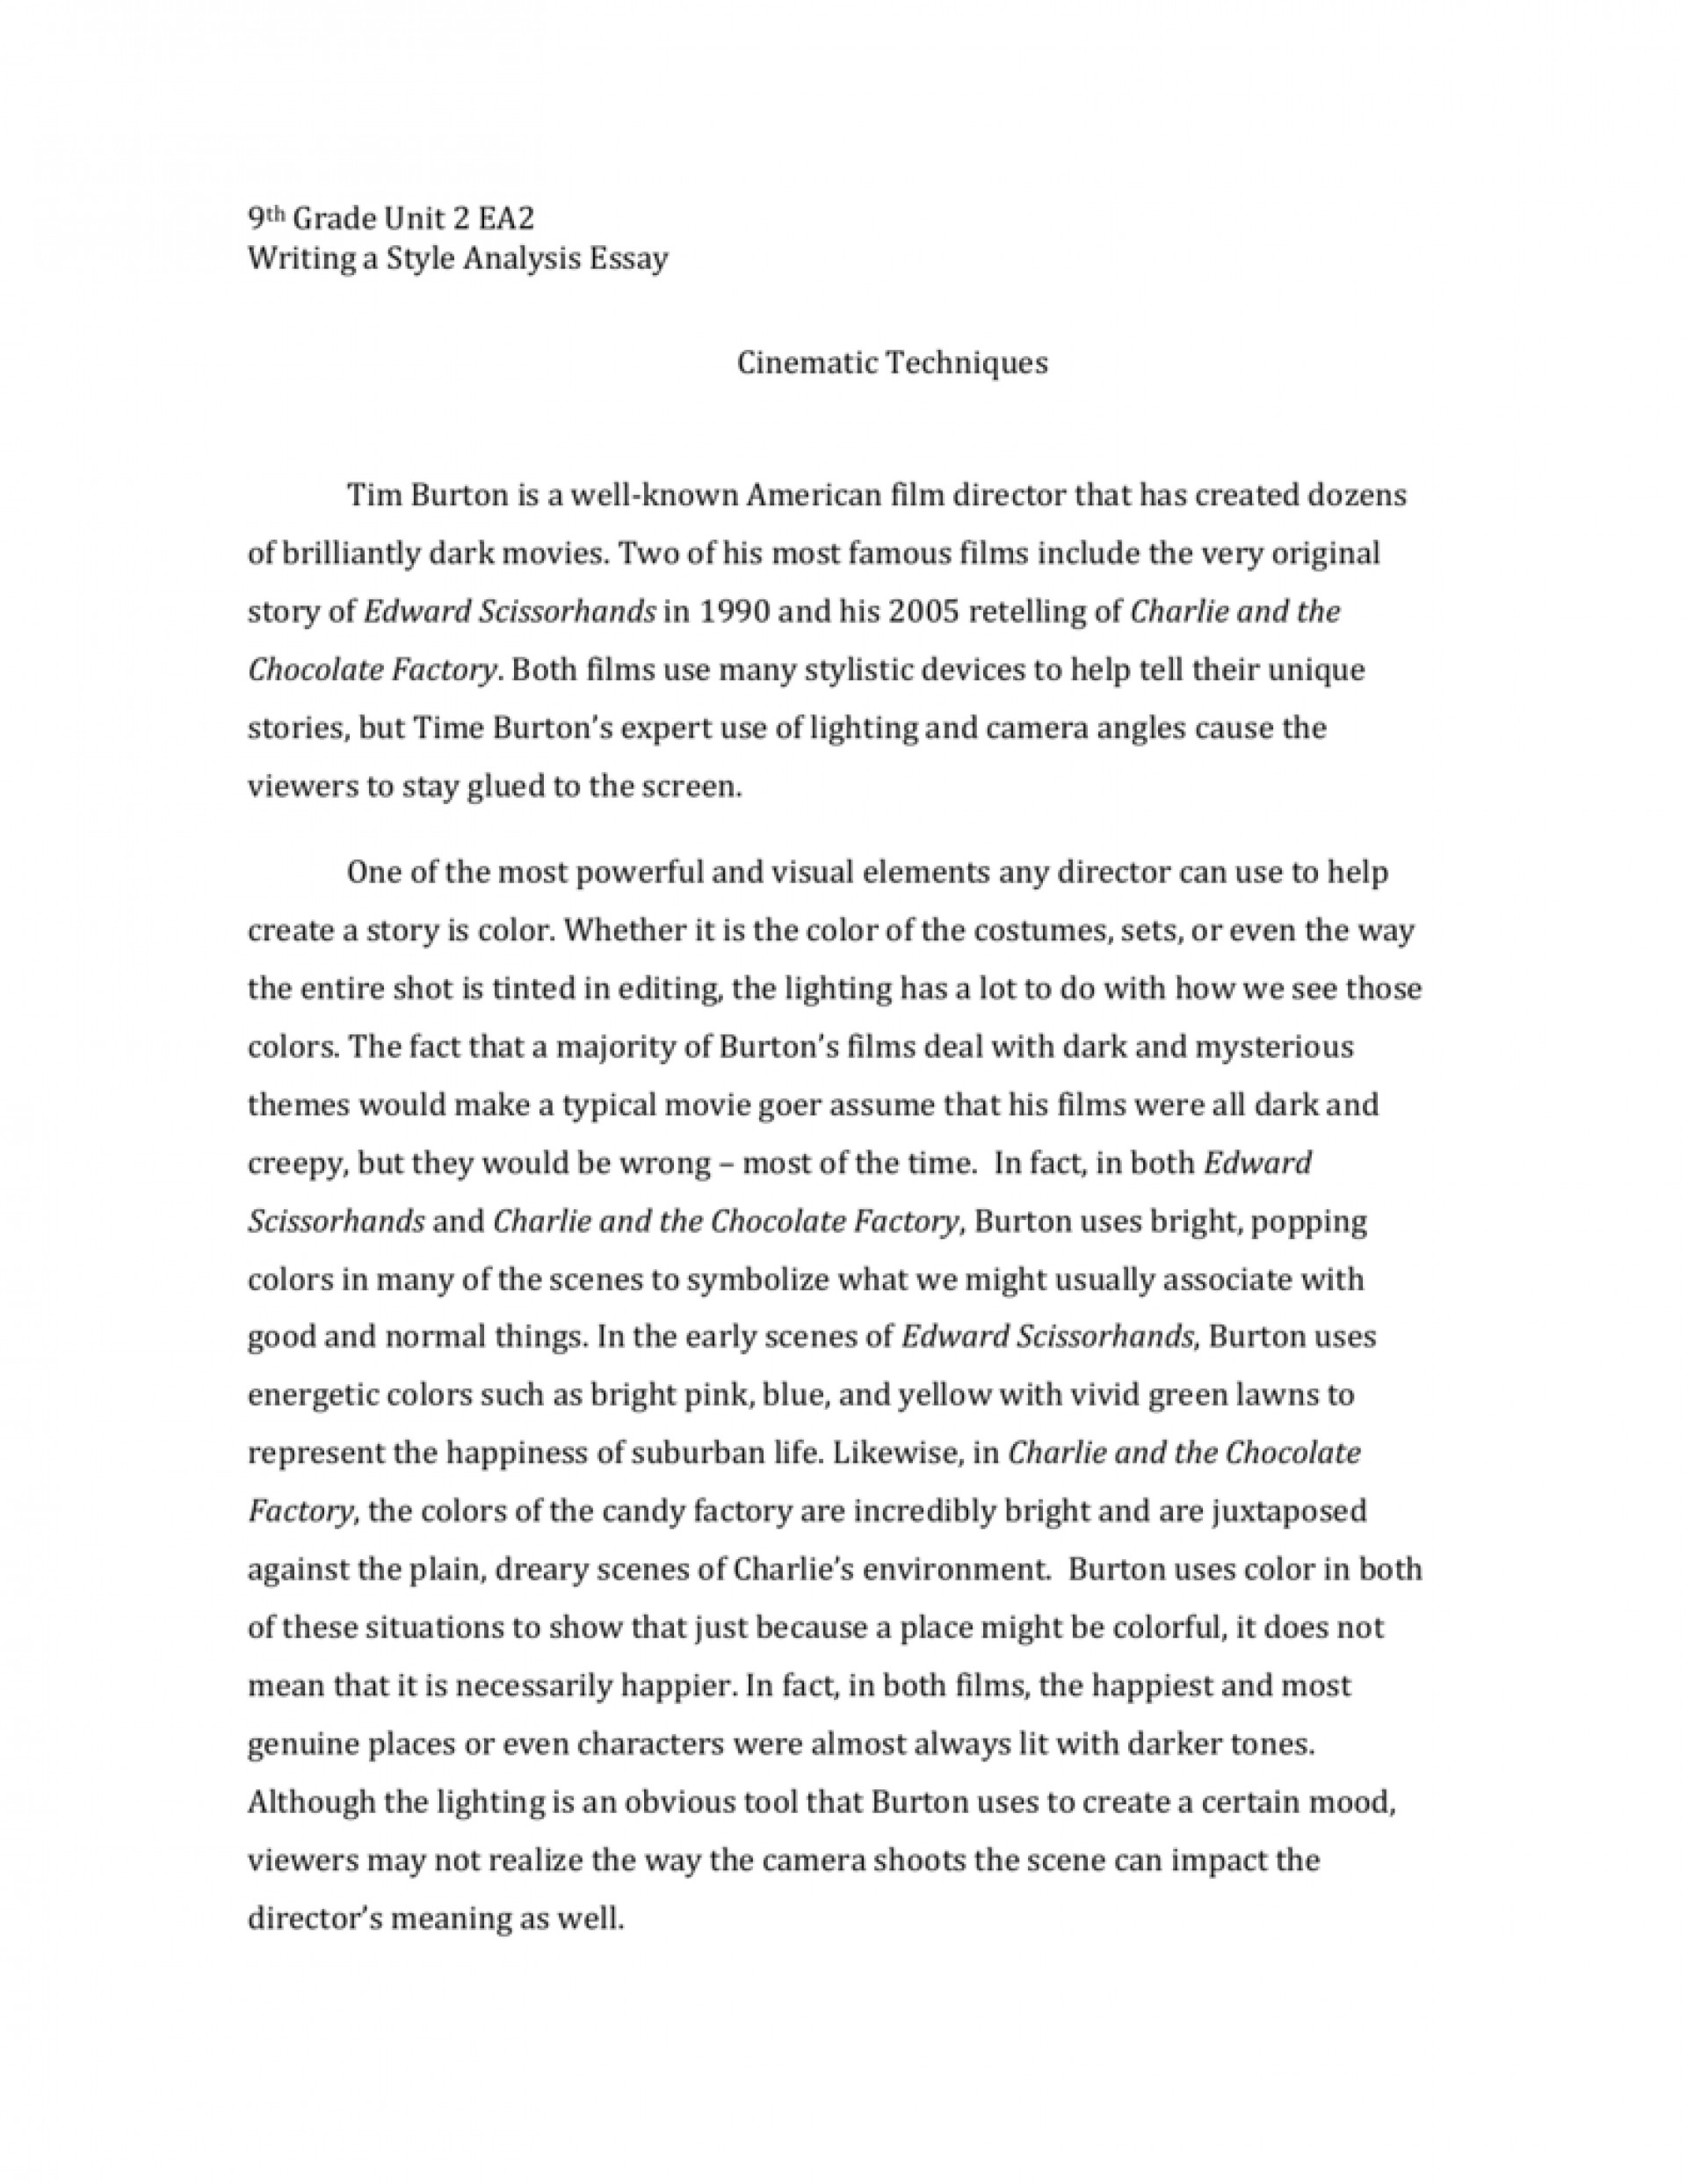 007 Style Analysis Sample 9th Grade Staar Expository Essay Examples 007181423 1 Argumentative Persuasive Narrative Example Samples Informative English Amazing Definition Writing And Extended 1920